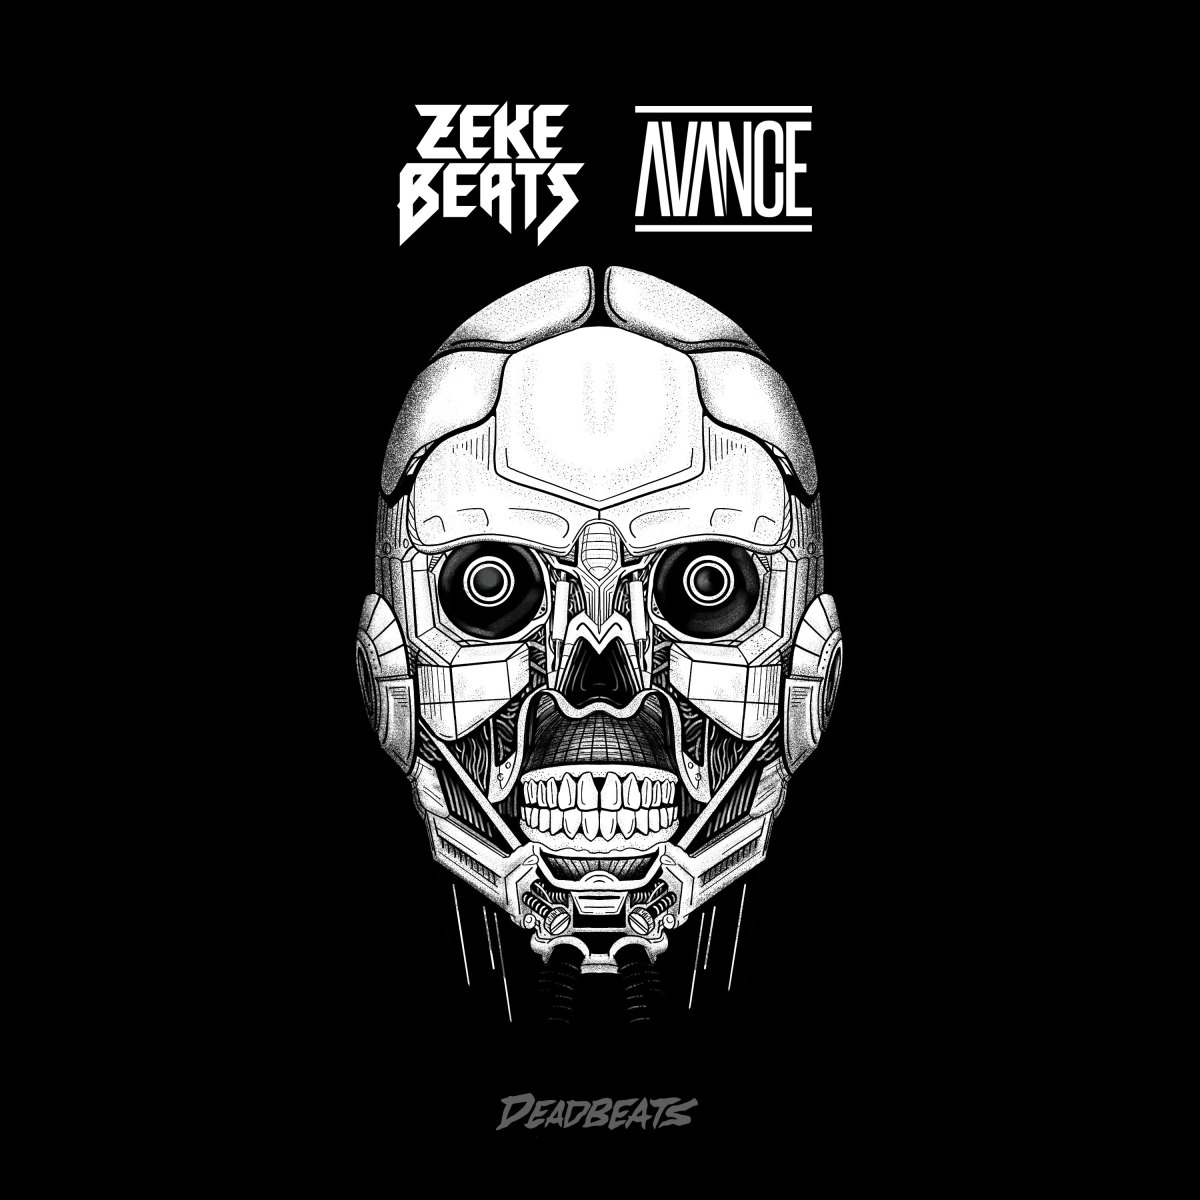 ZEKE BEATS & AVANCE - Bad Robot (via Deadbeats) - EDM.com Feature